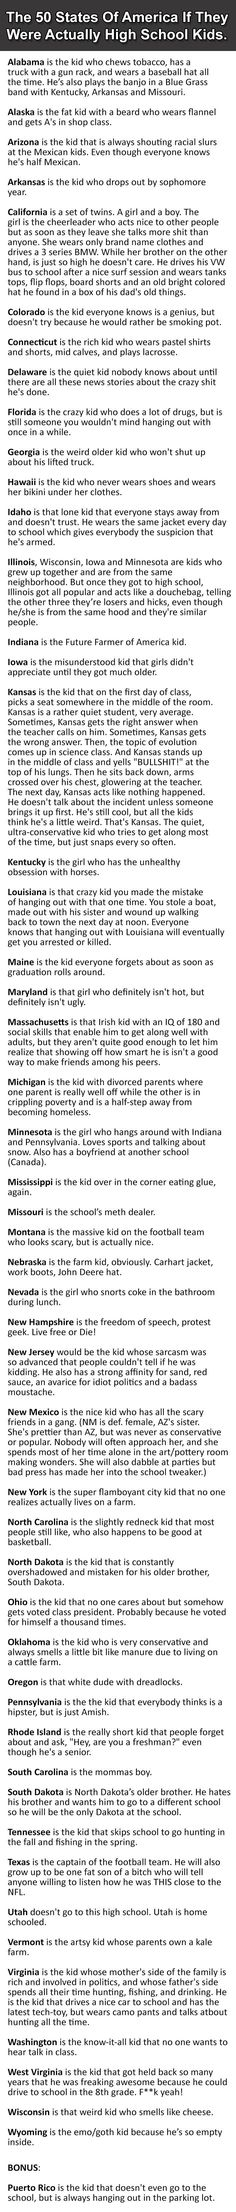 The 50 States Of America If They Were Actually High School Kids. | Seriously, For Real?Seriously, For Real?